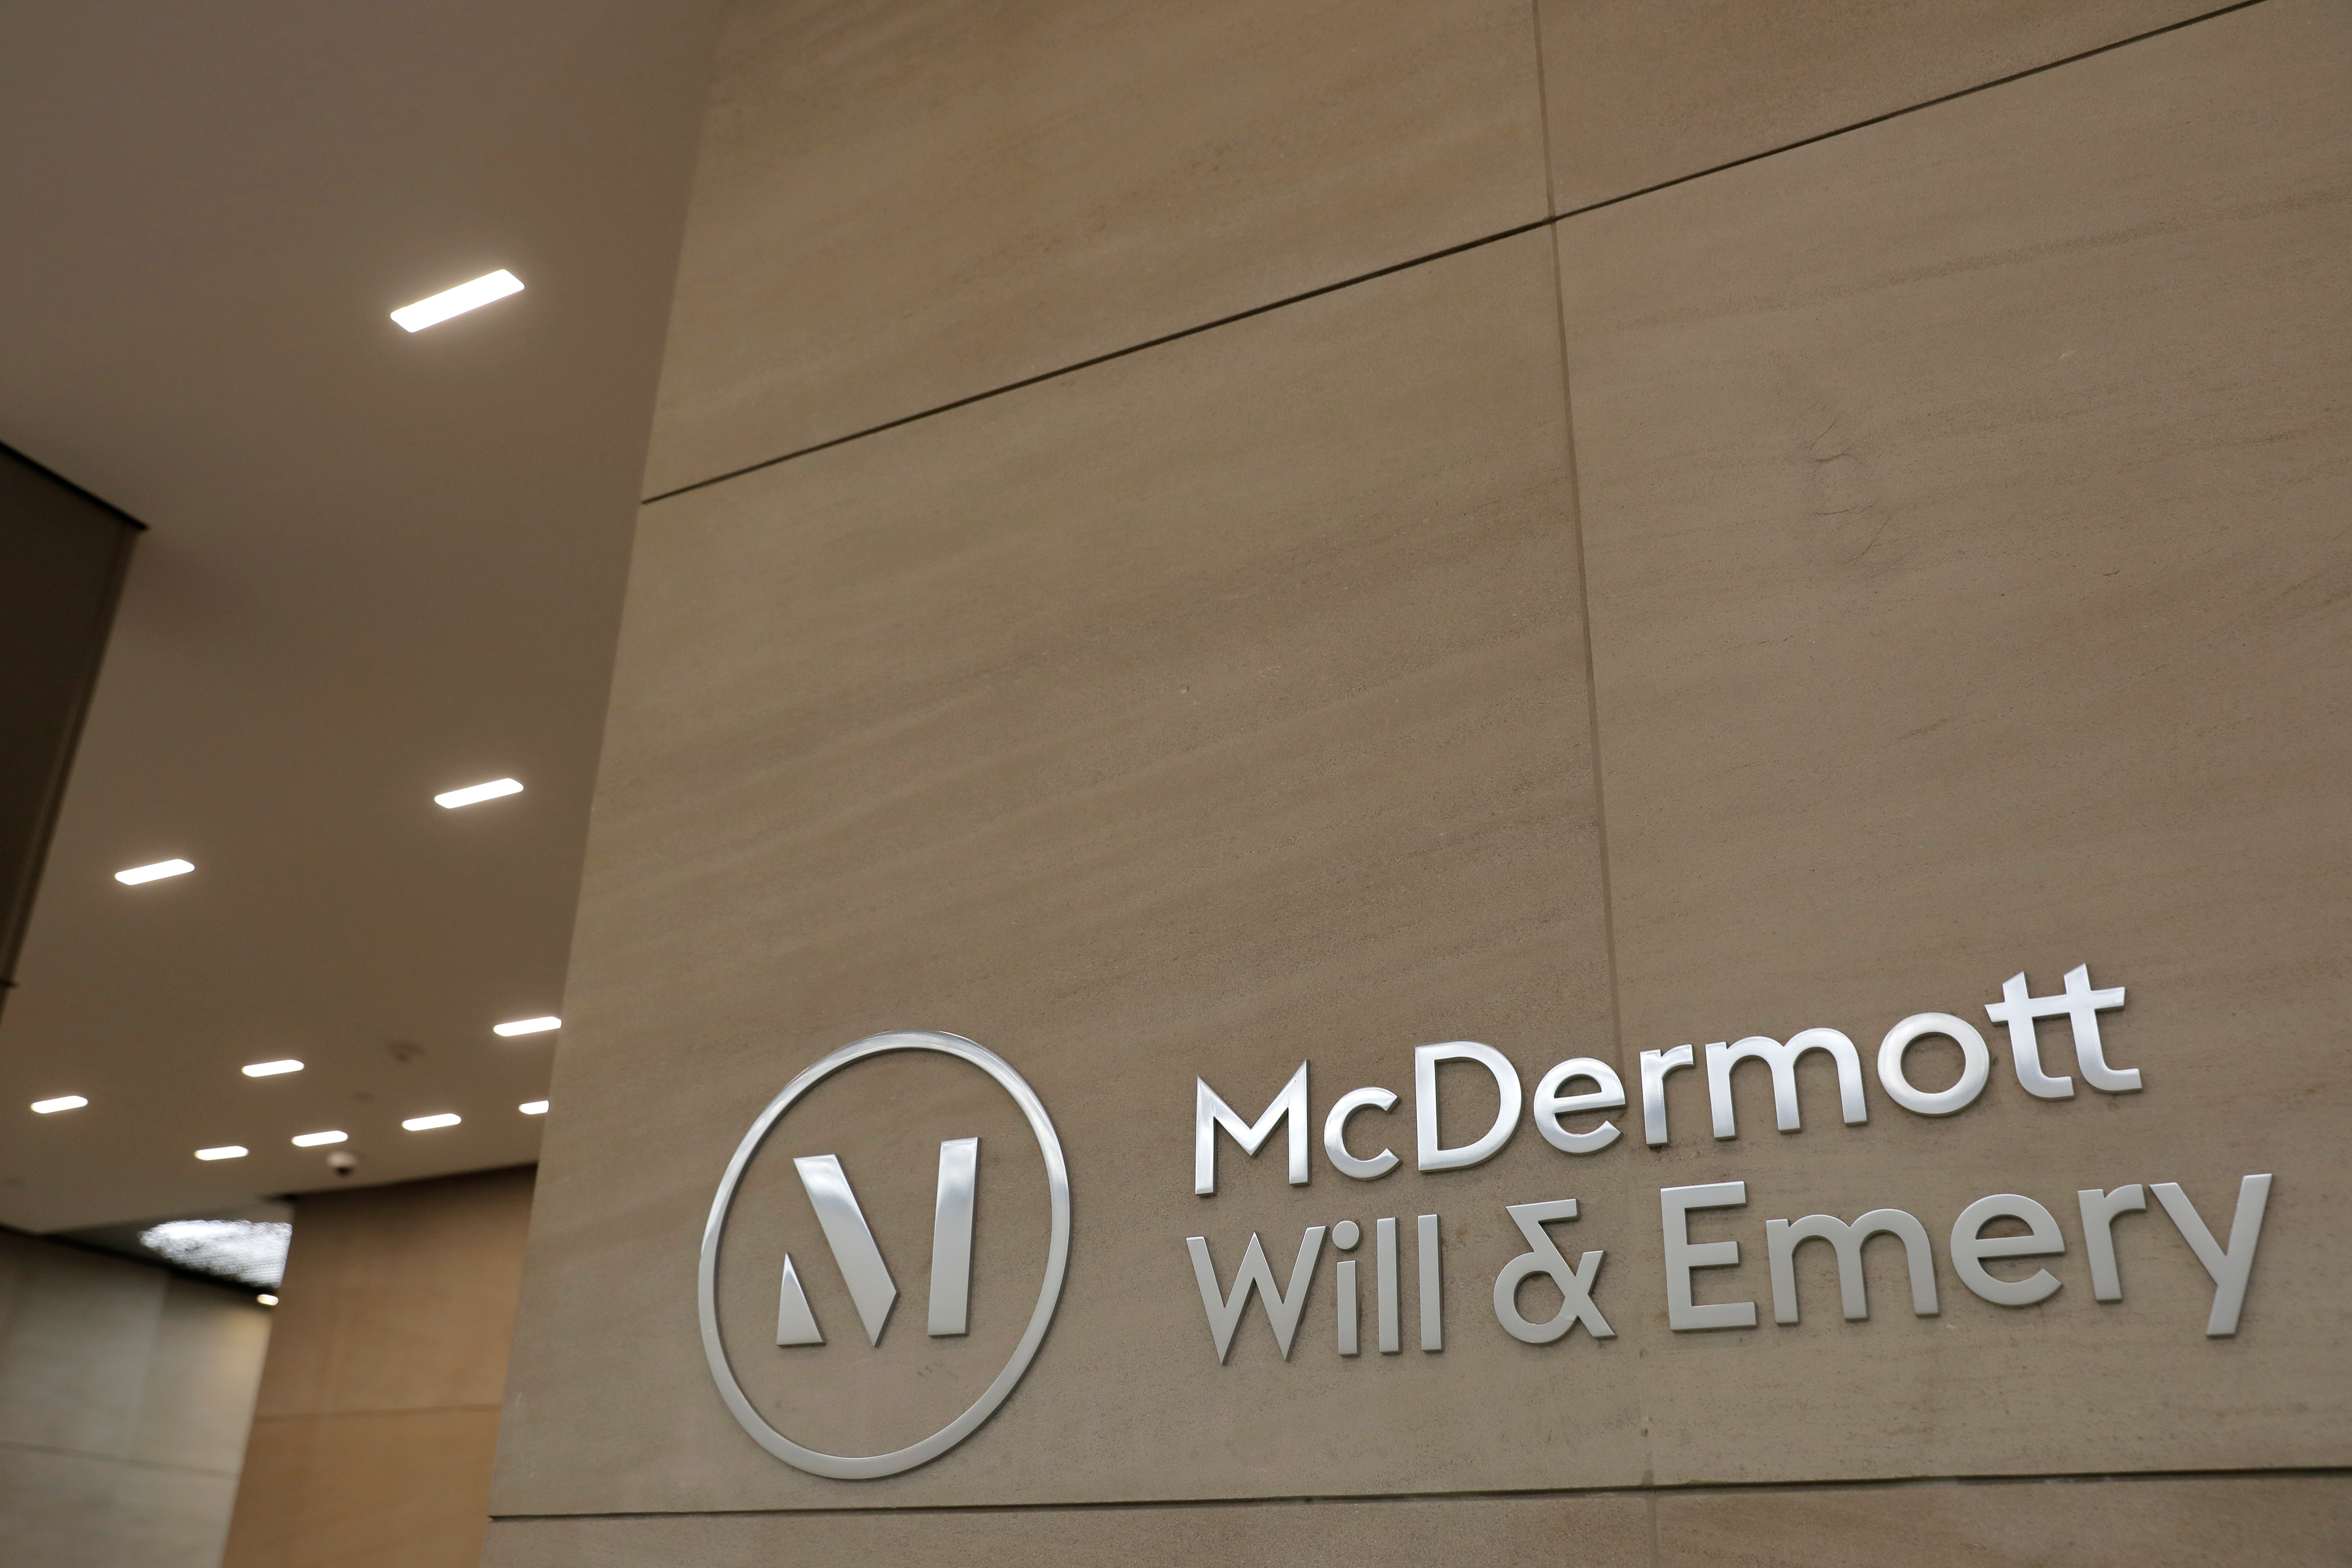 The legal offices of McDermott Will & Emery in New York, U.S. REUTERS/Andrew Kelly